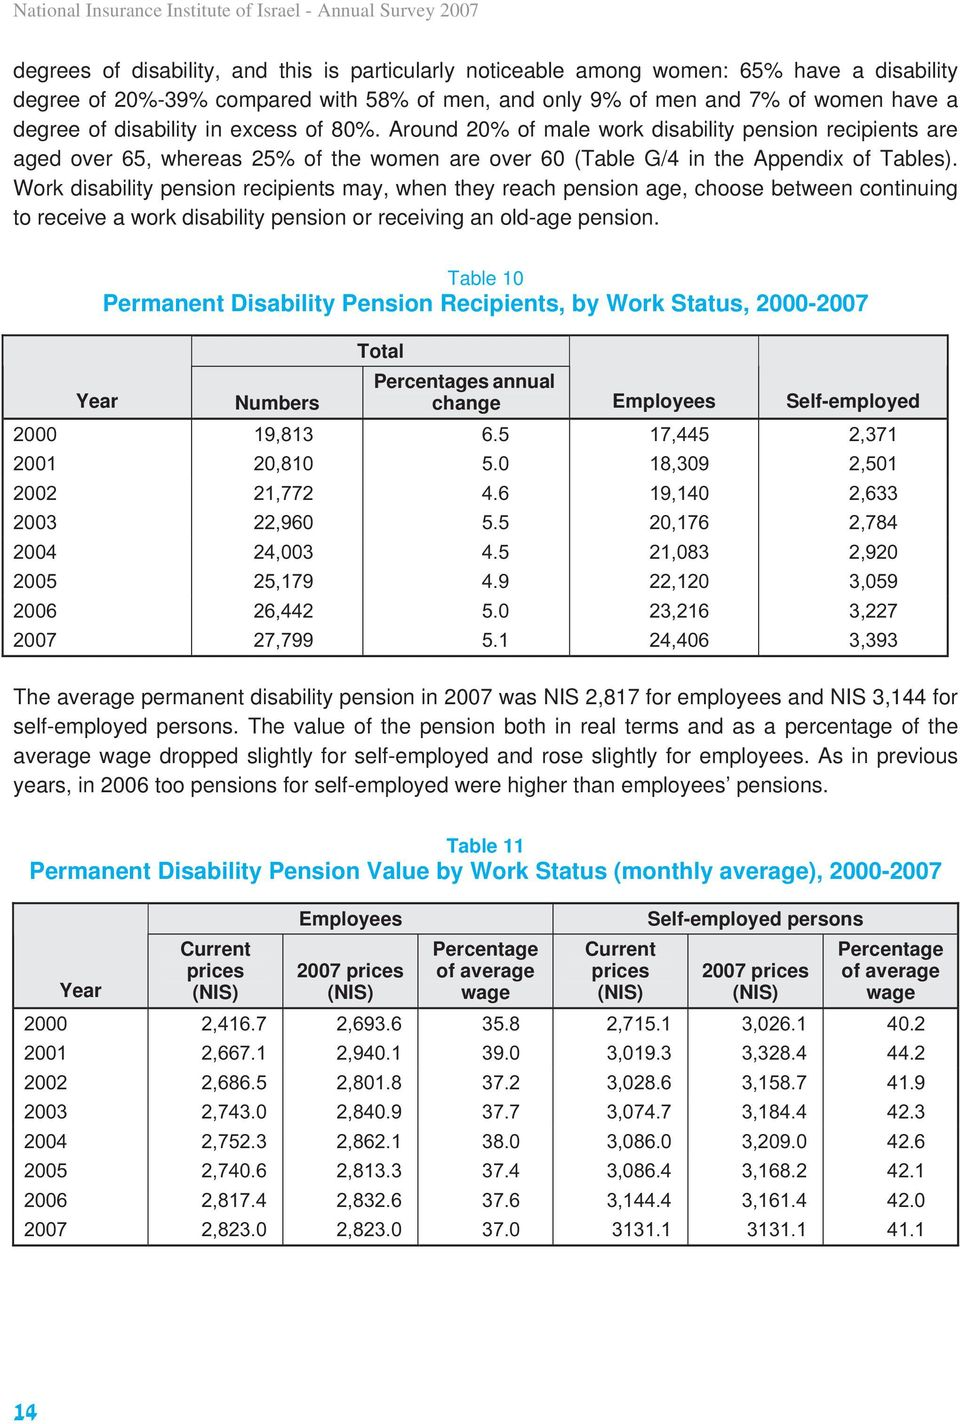 Around 20% of male work disability pension recipients are aged over 65, whereas 25% of the women are over 60 (Table G/4 in the Appendix of Tables).